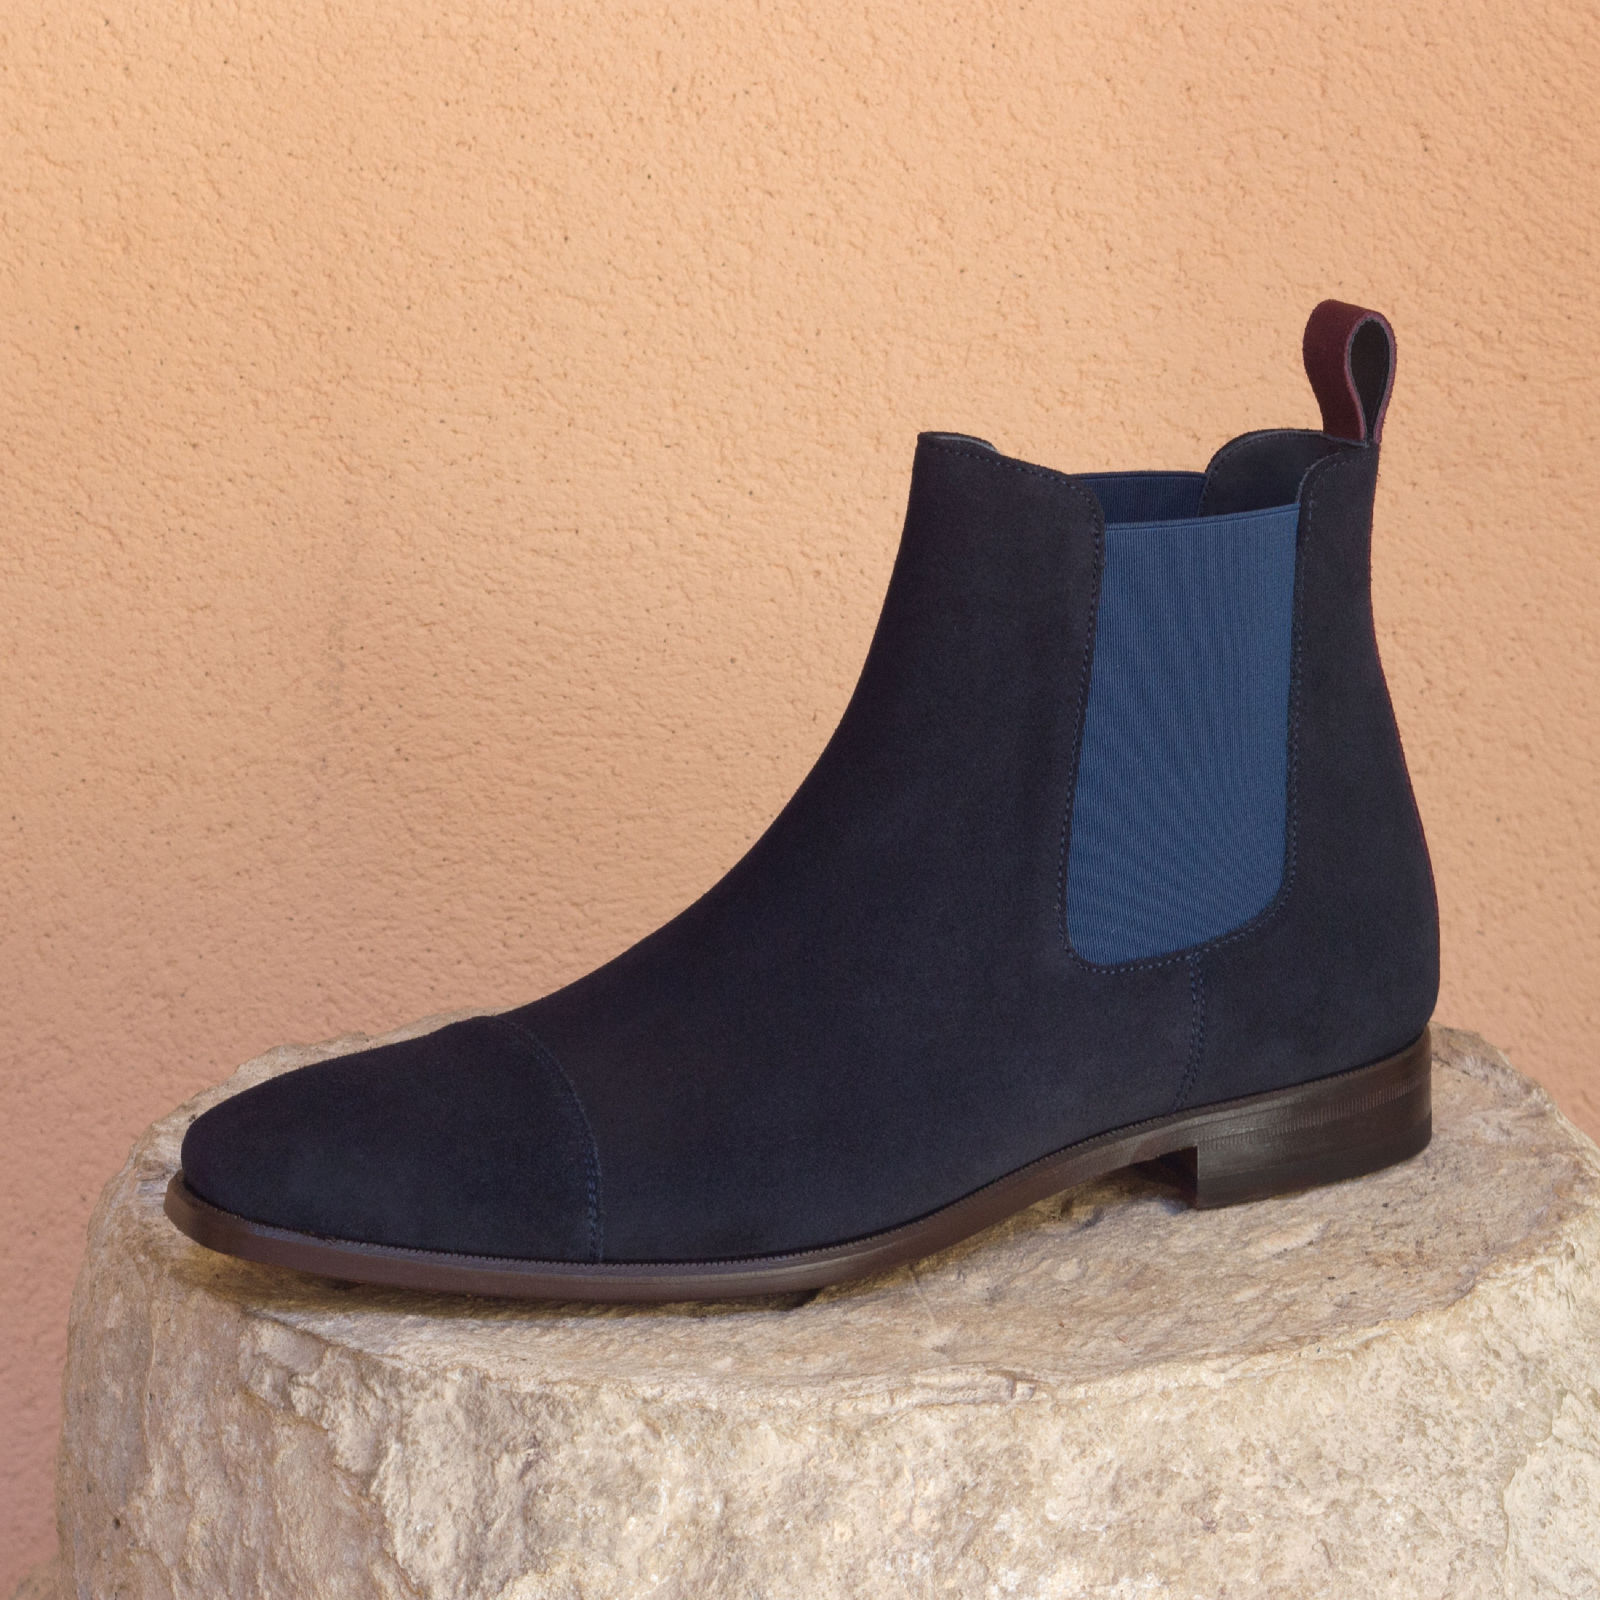 Chelsea boot navy lux suede + burgundy lux suede : 250€